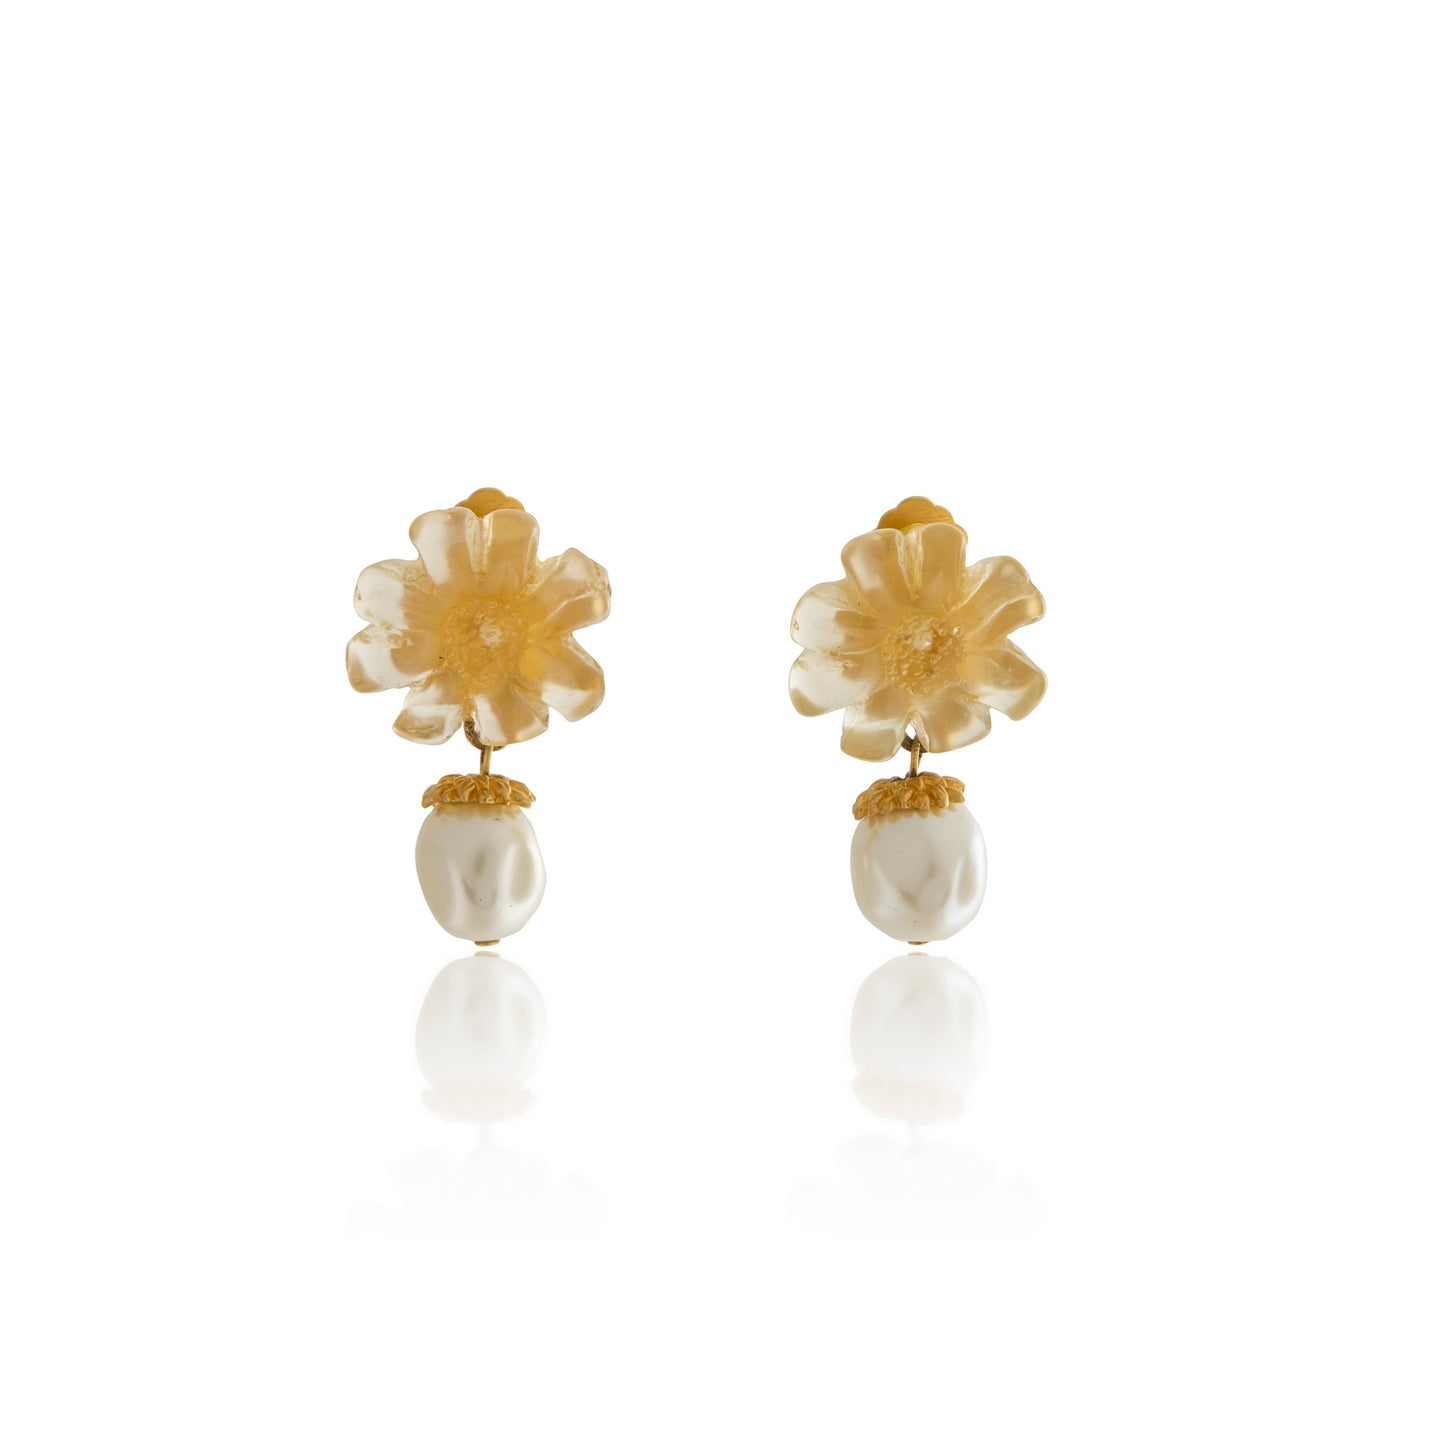 Vintage Kenzo Pearl Flower Earrings